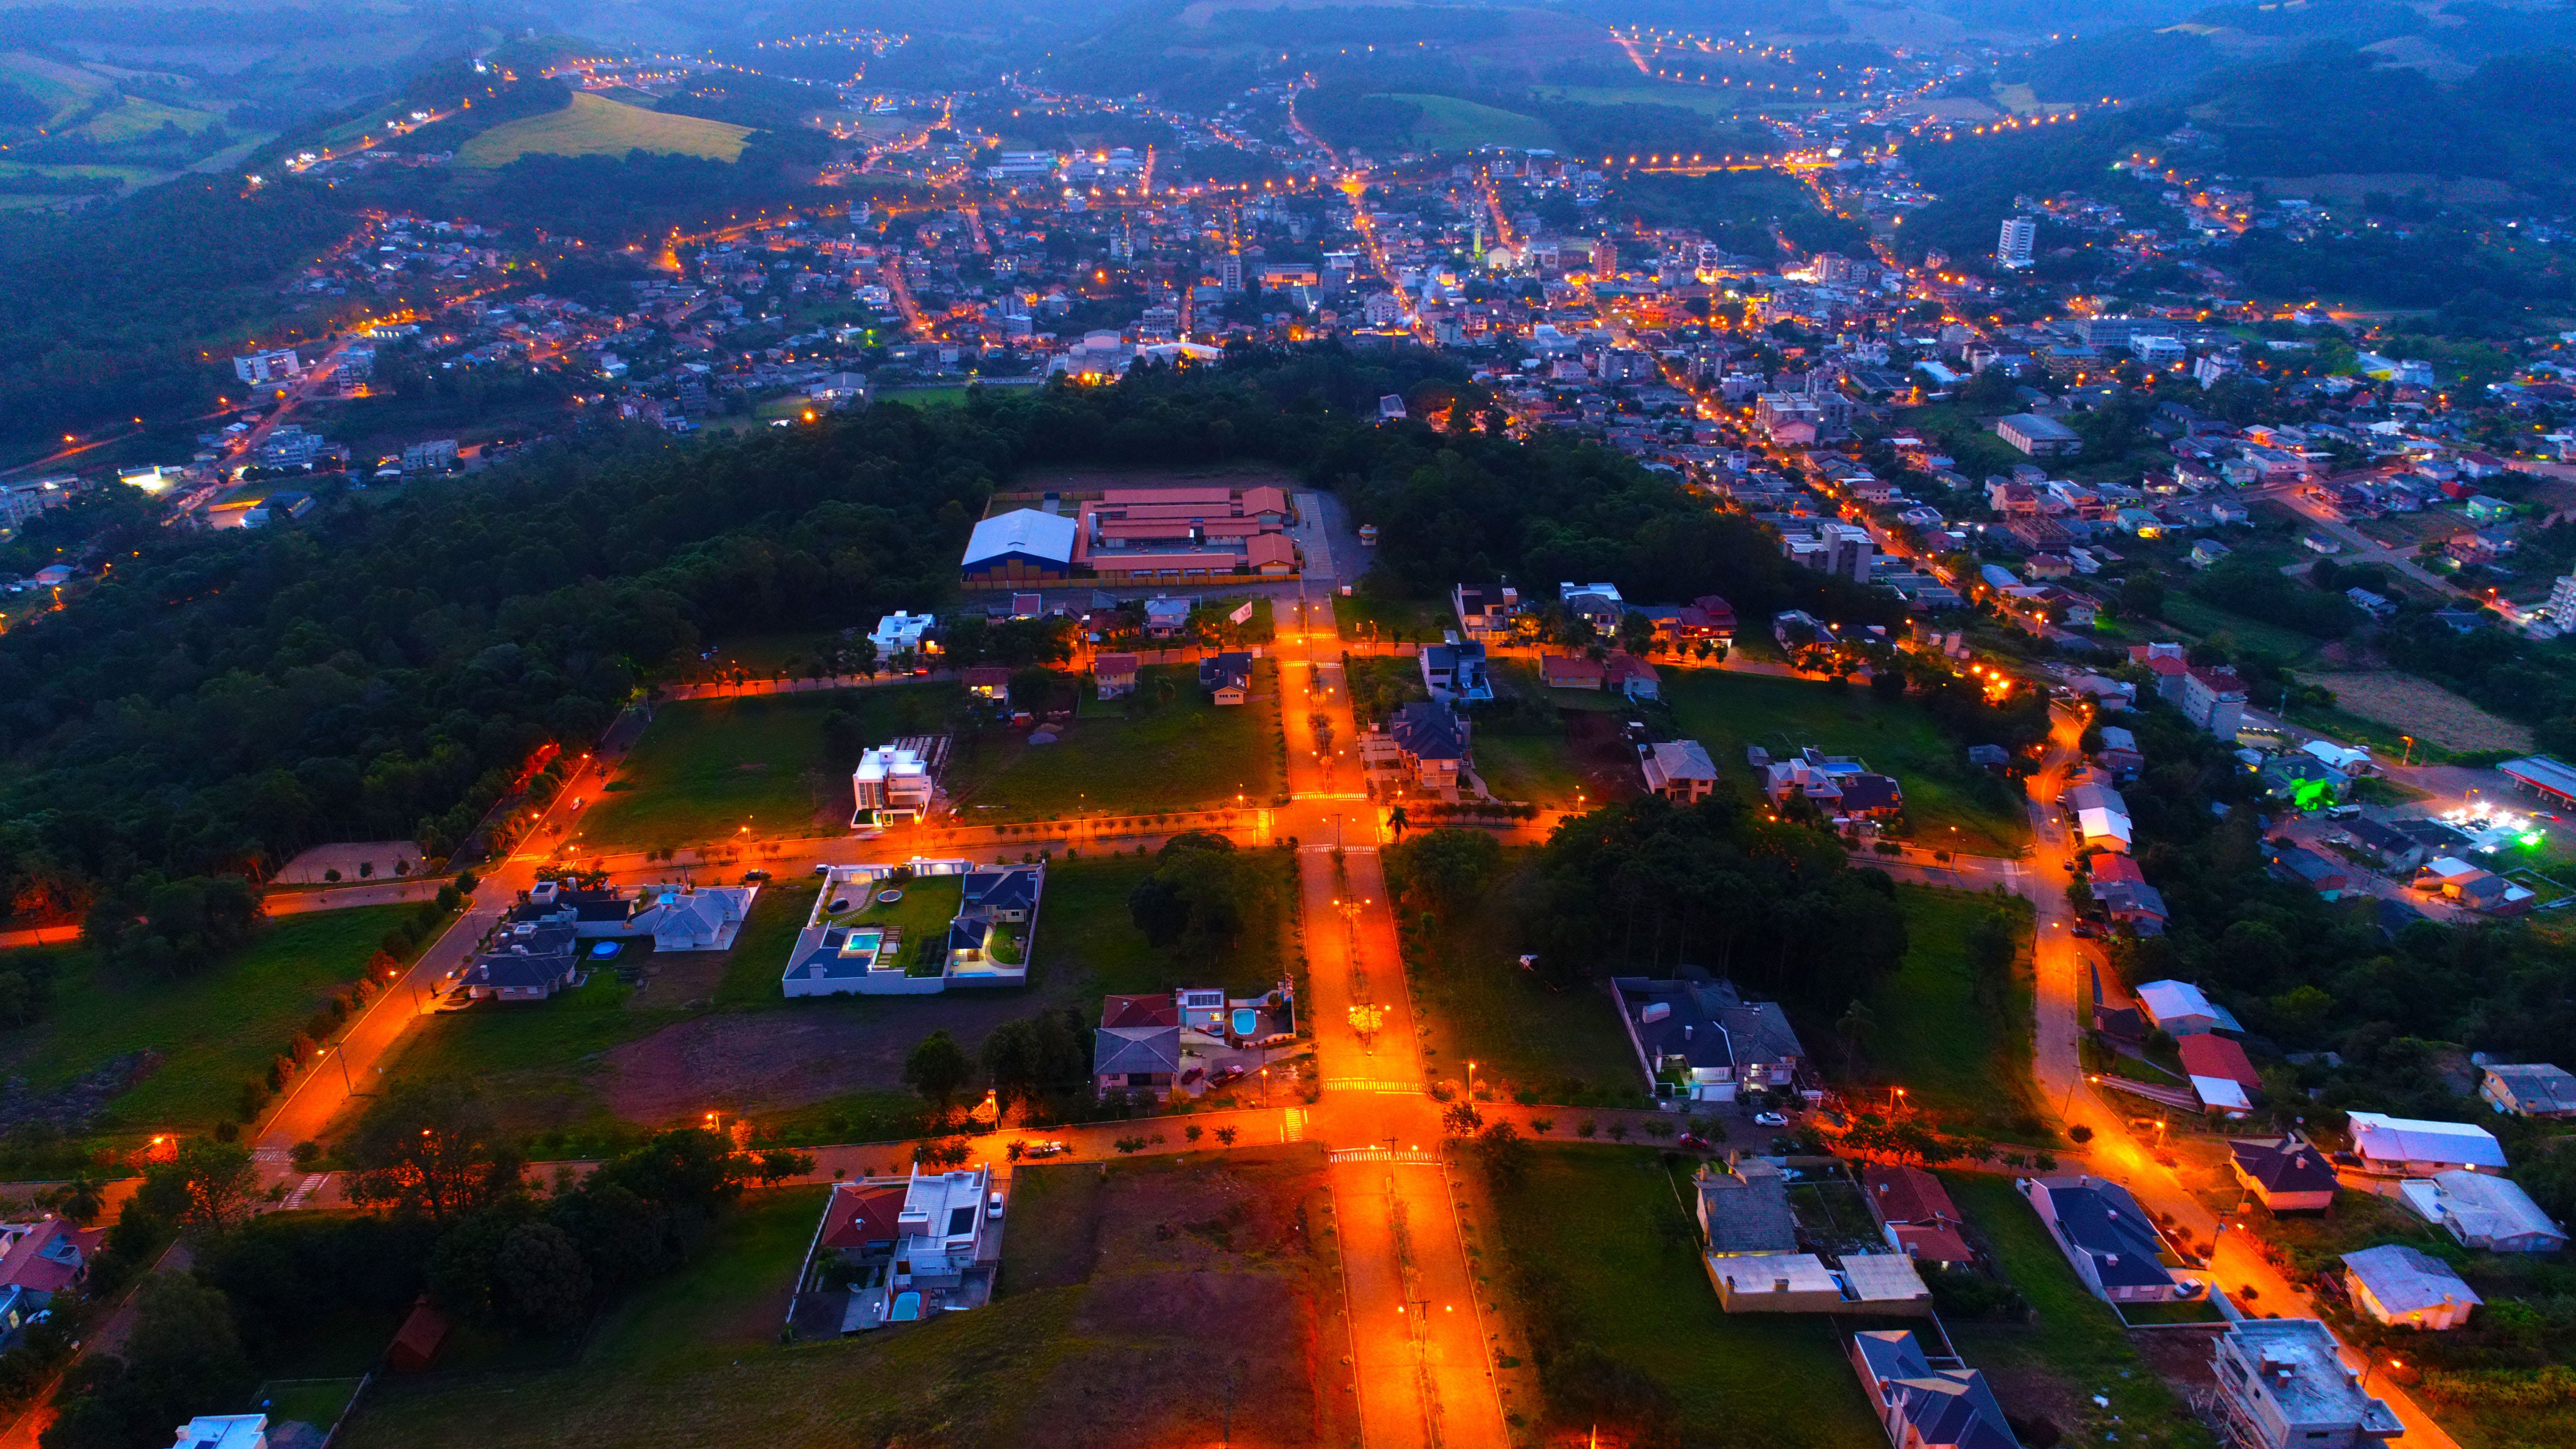 Aerial Photography of Lighted Houses Taken during Nighttime